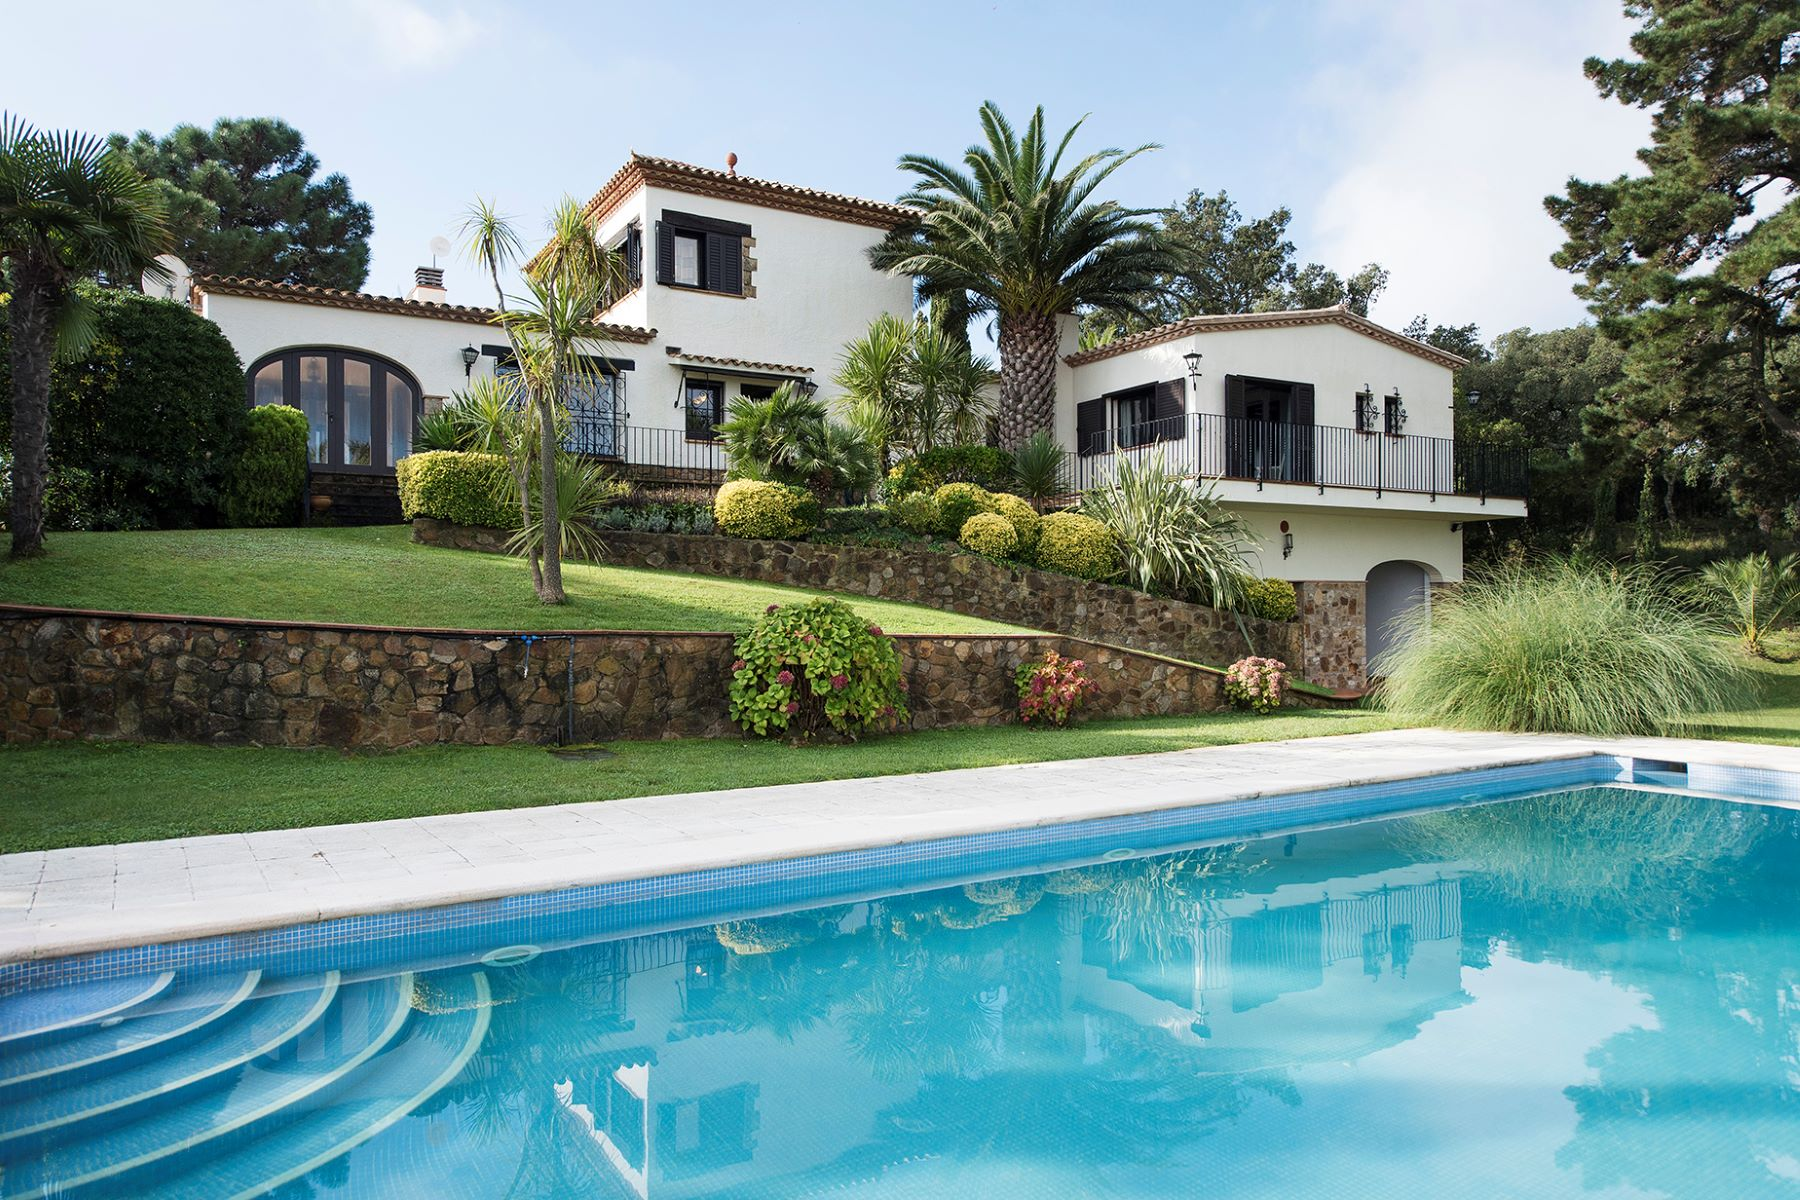 Single Family Home for Sale at Cosy villa with large garden and views of the mountains and sea Playa De Aro, Costa Brava, 17250 Spain